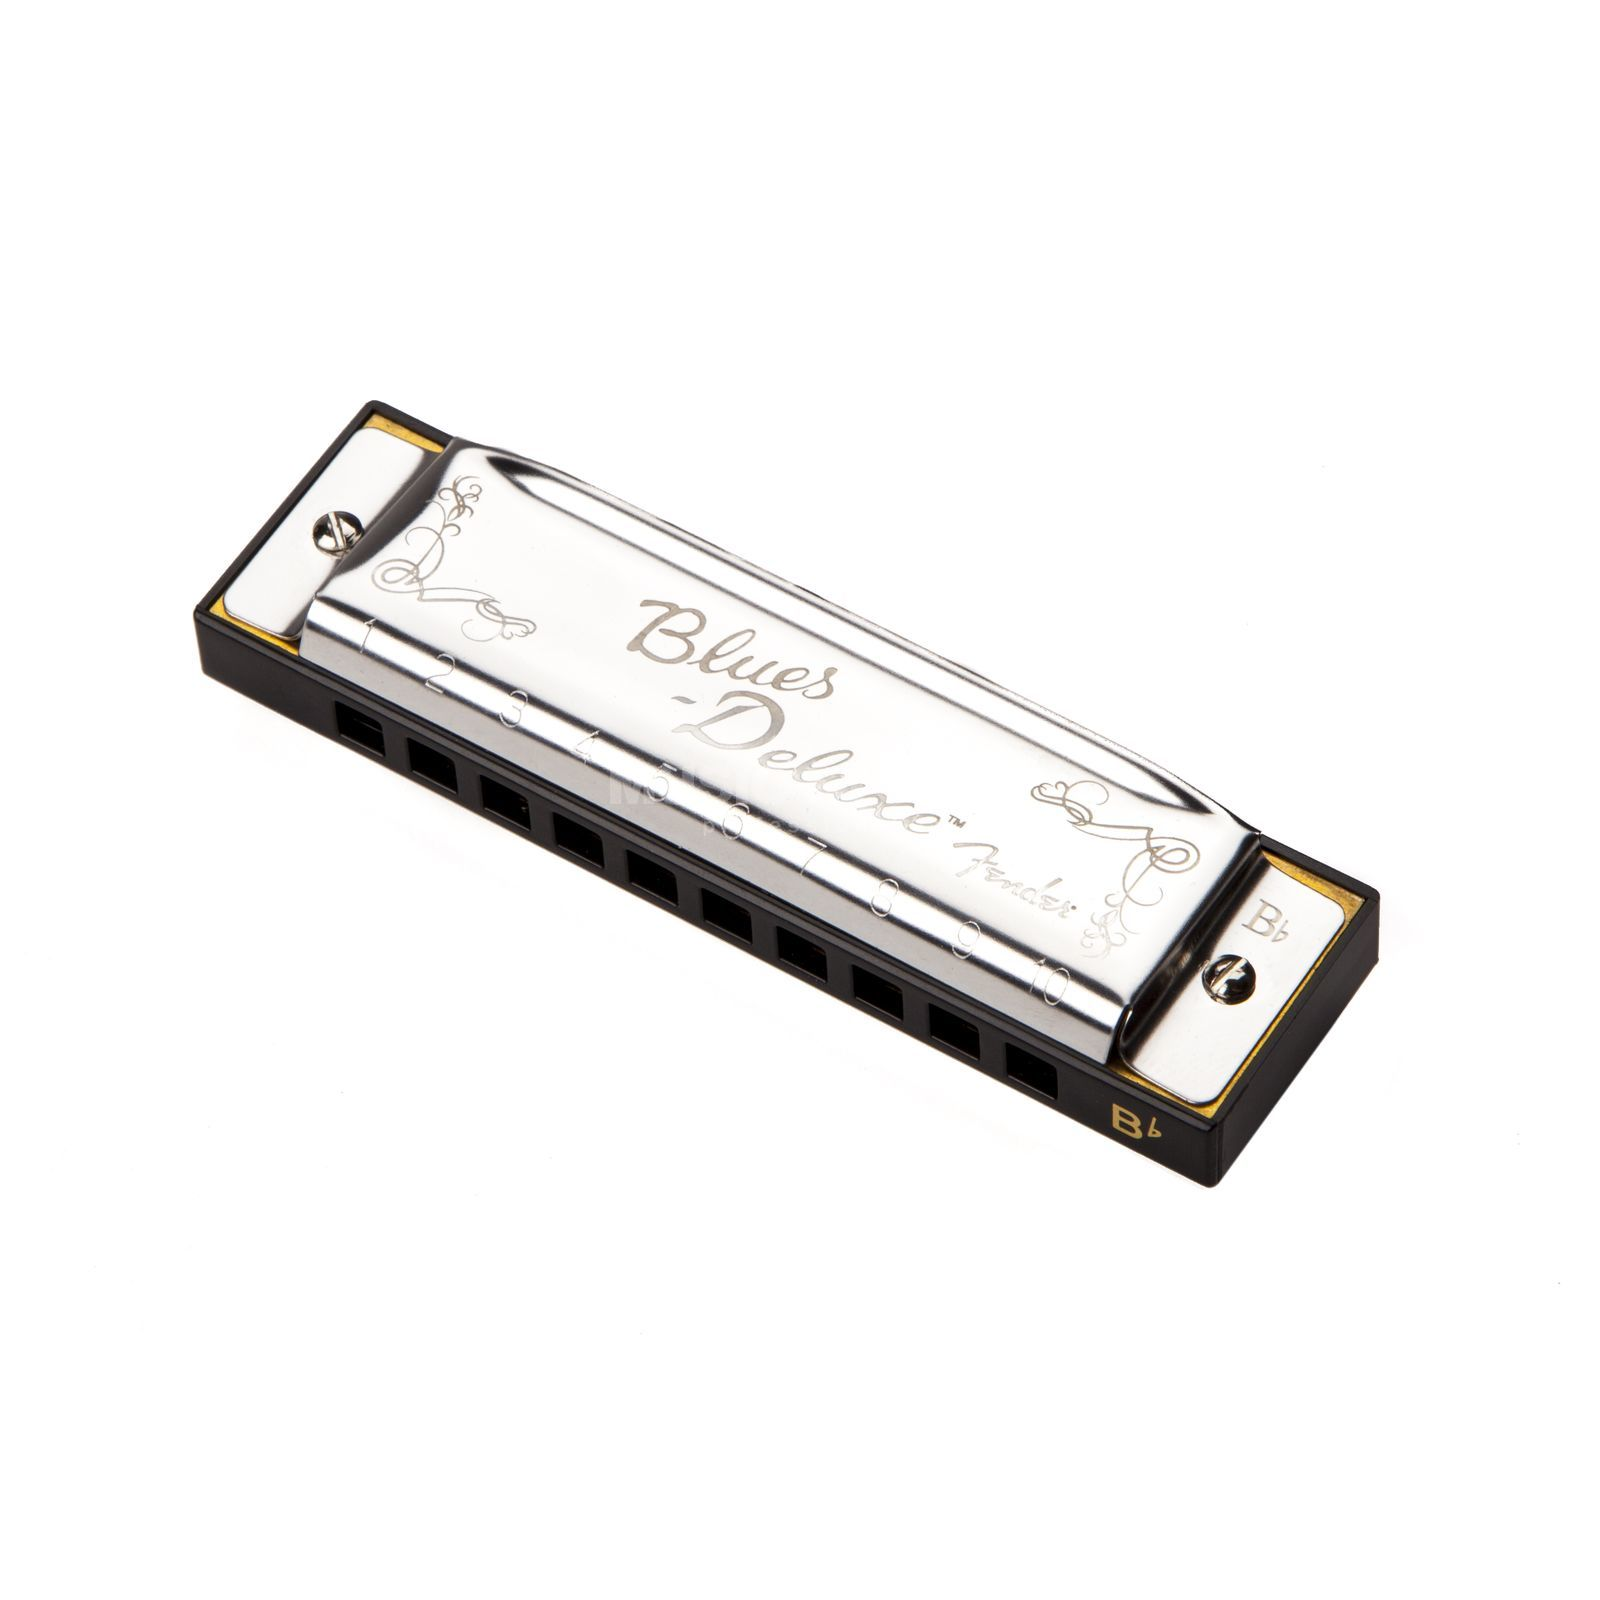 Fender Blues Deluxe Harmonica Key of B Flat Product Image